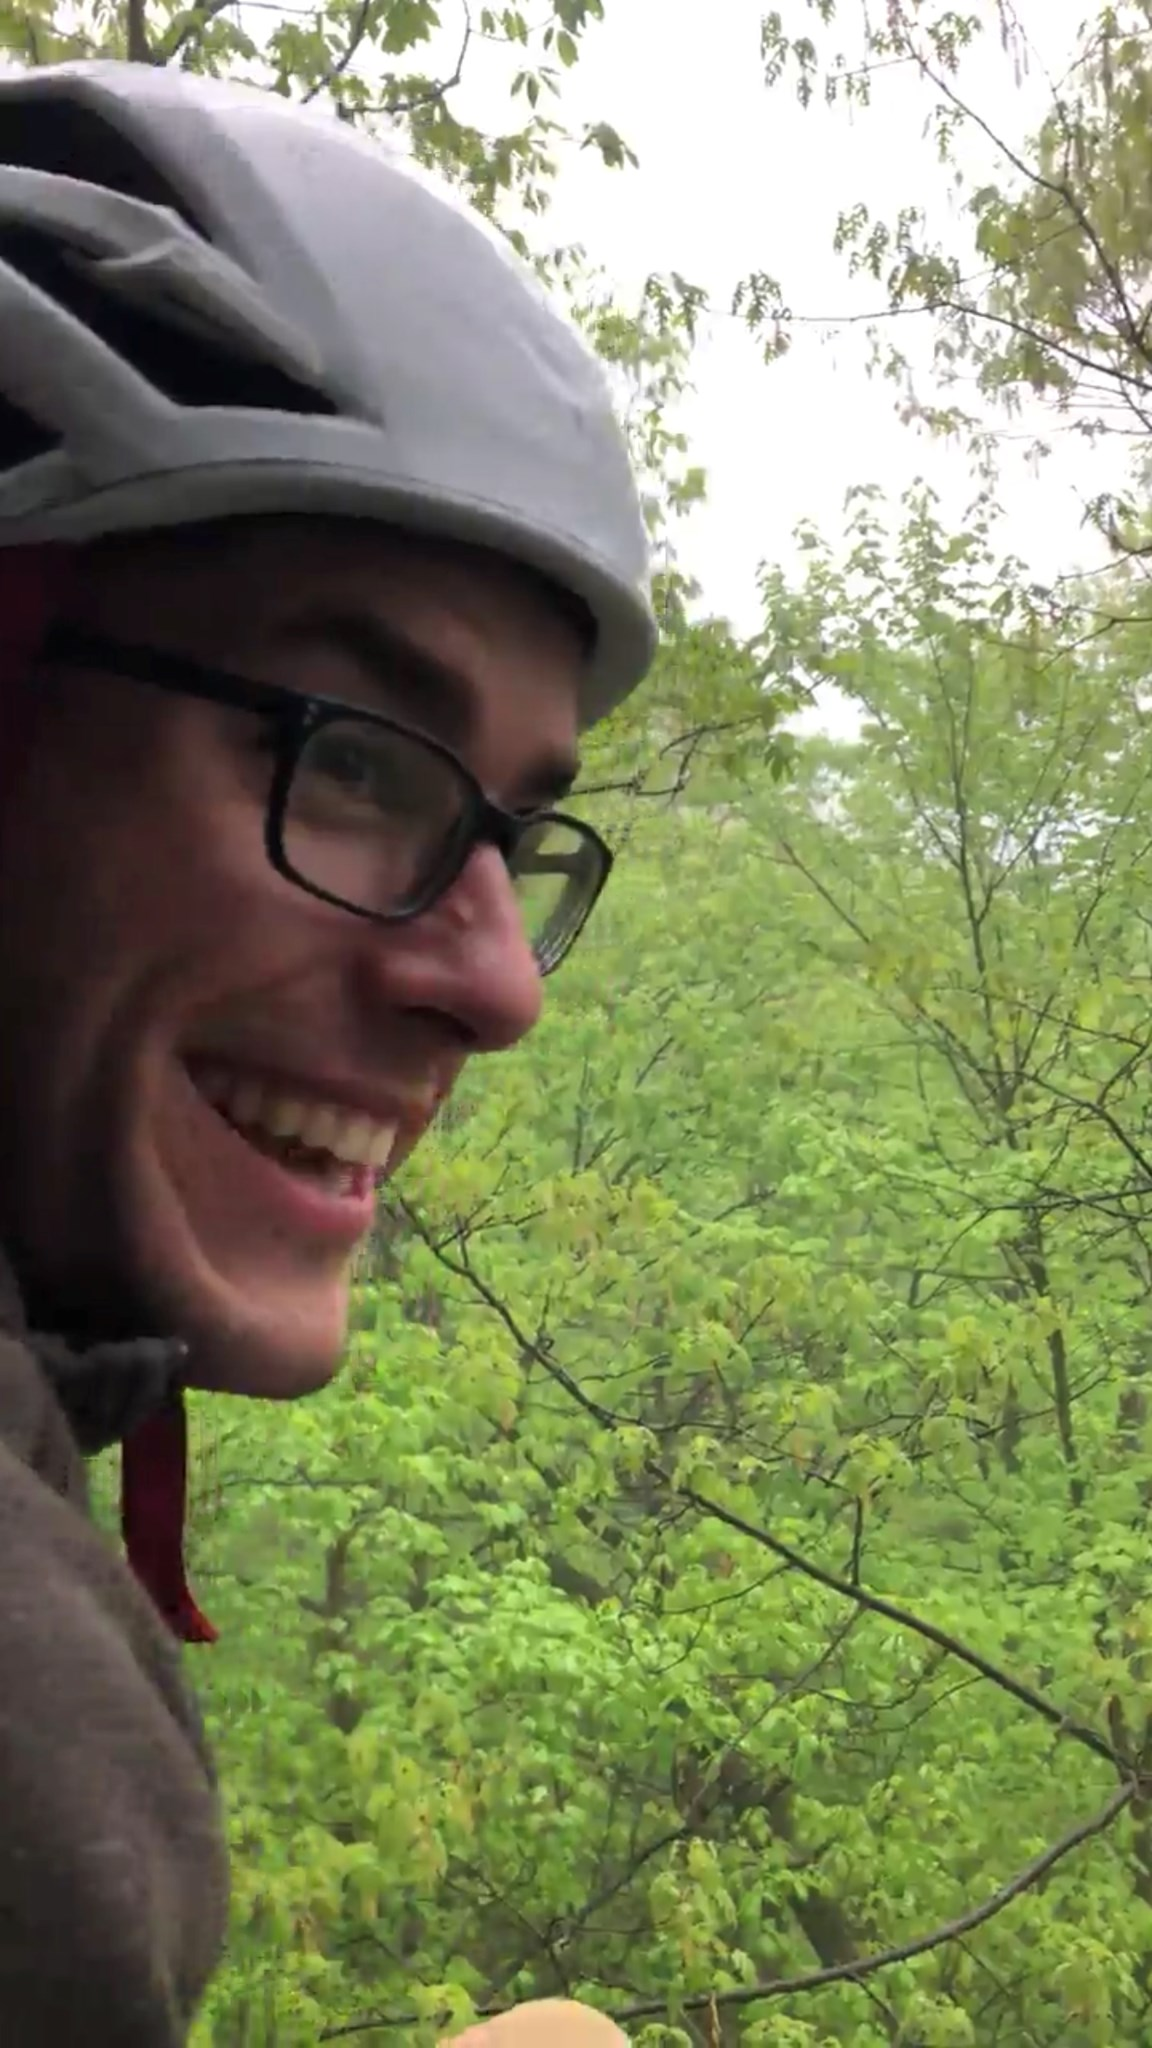 Laughing about getting caught in the rain mid climb in the Gunks, May 2018